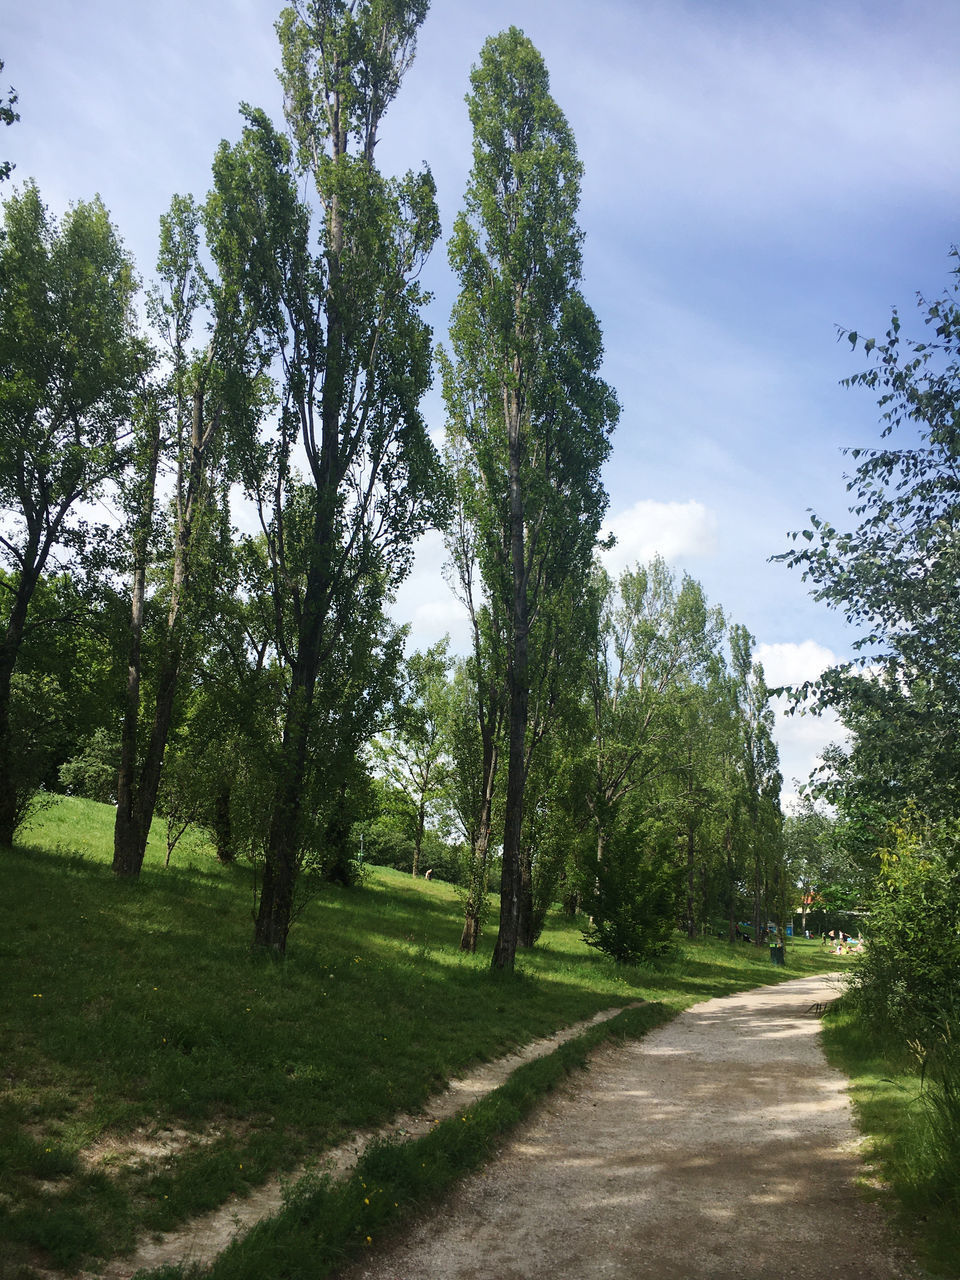 FOOTPATH AMIDST TREES AND PLANTS AGAINST SKY